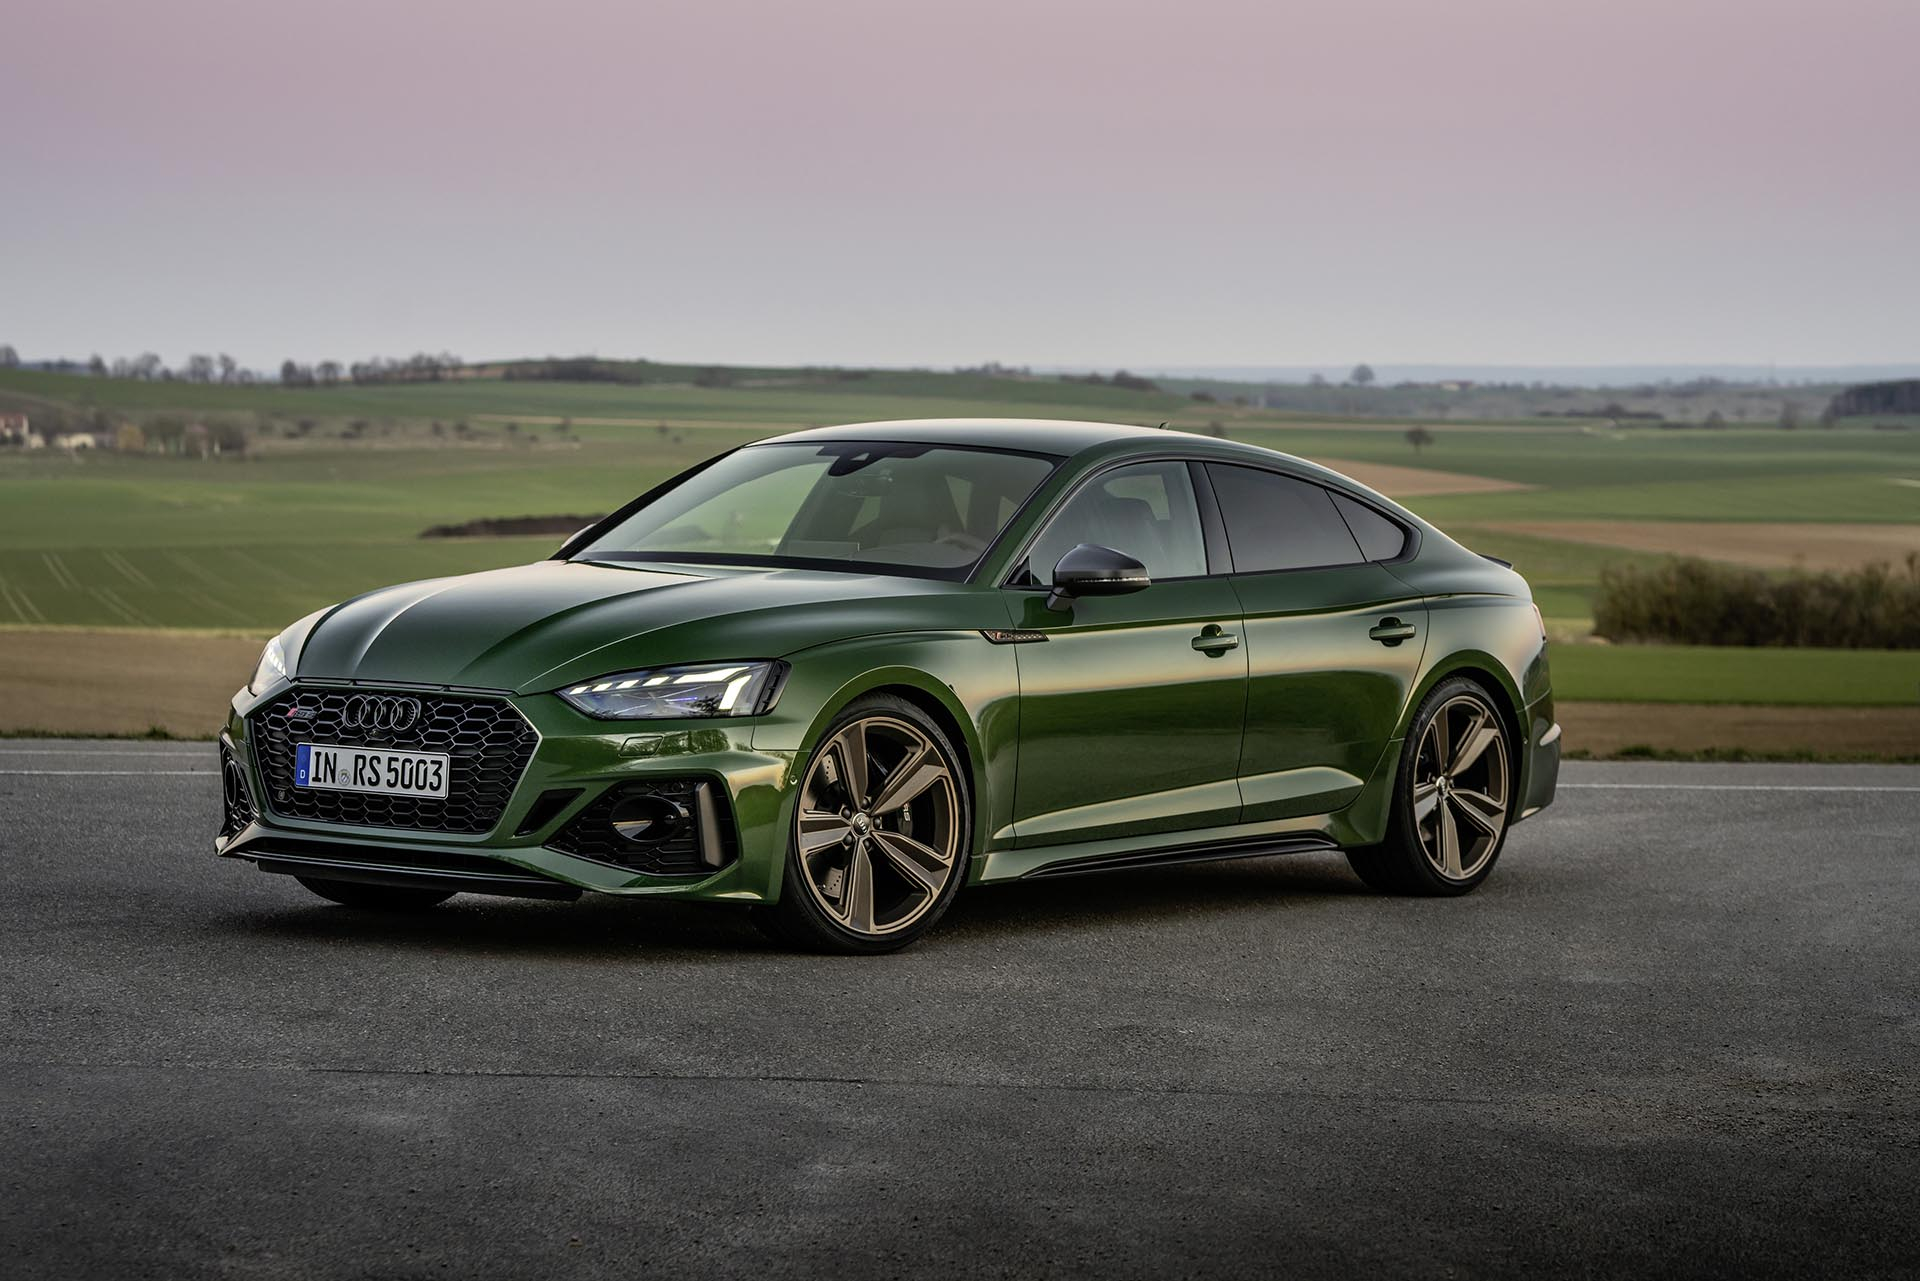 09_Audi RS5 Sportback Green front profile